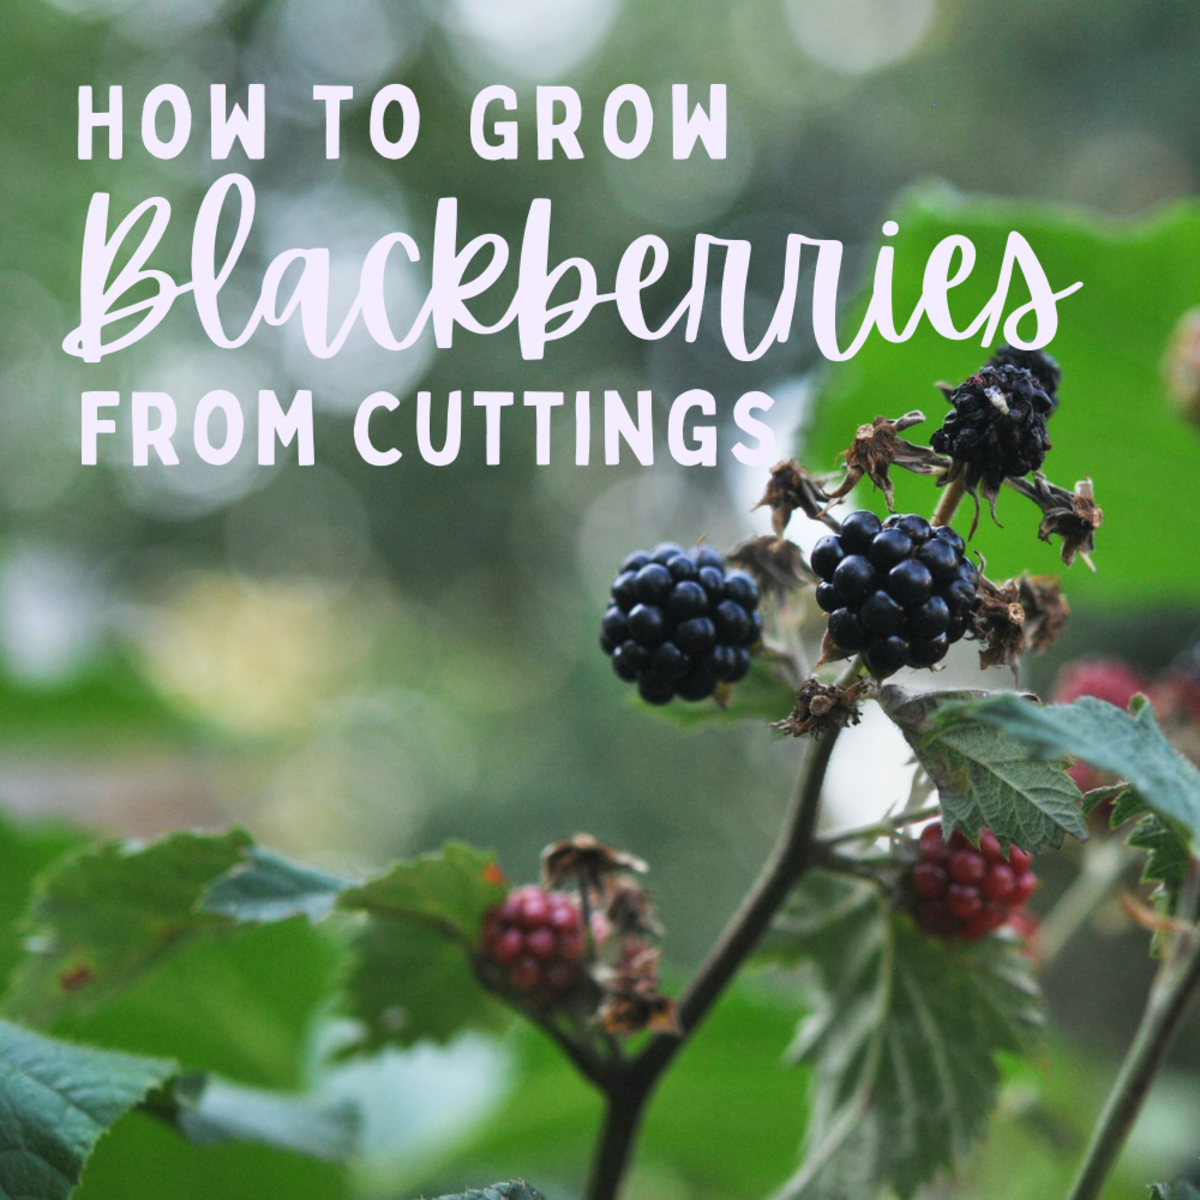 How to grow blackberries from cuttings.